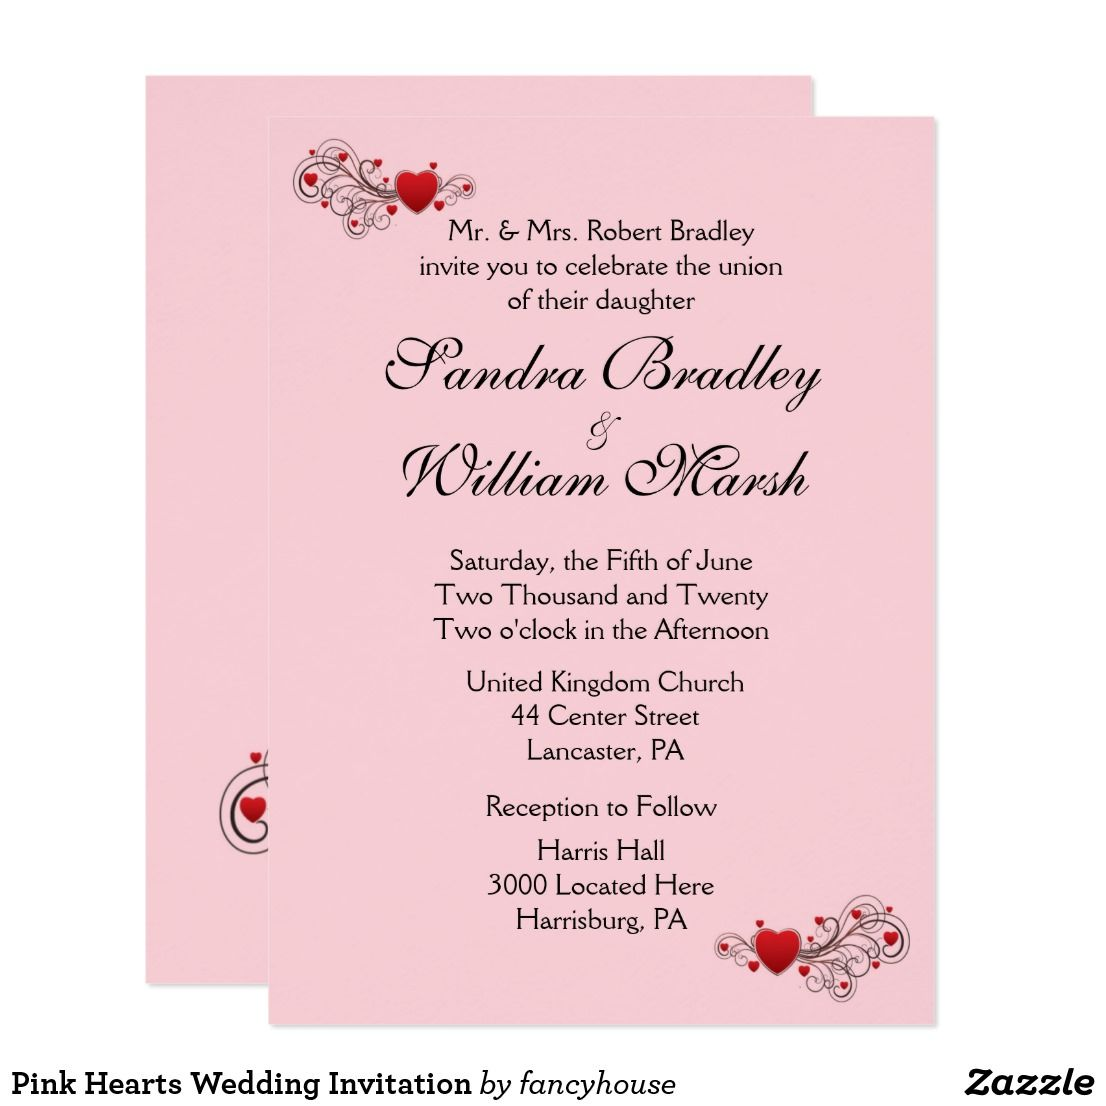 Pink Hearts Wedding Invitation | Heart wedding invitations and ...